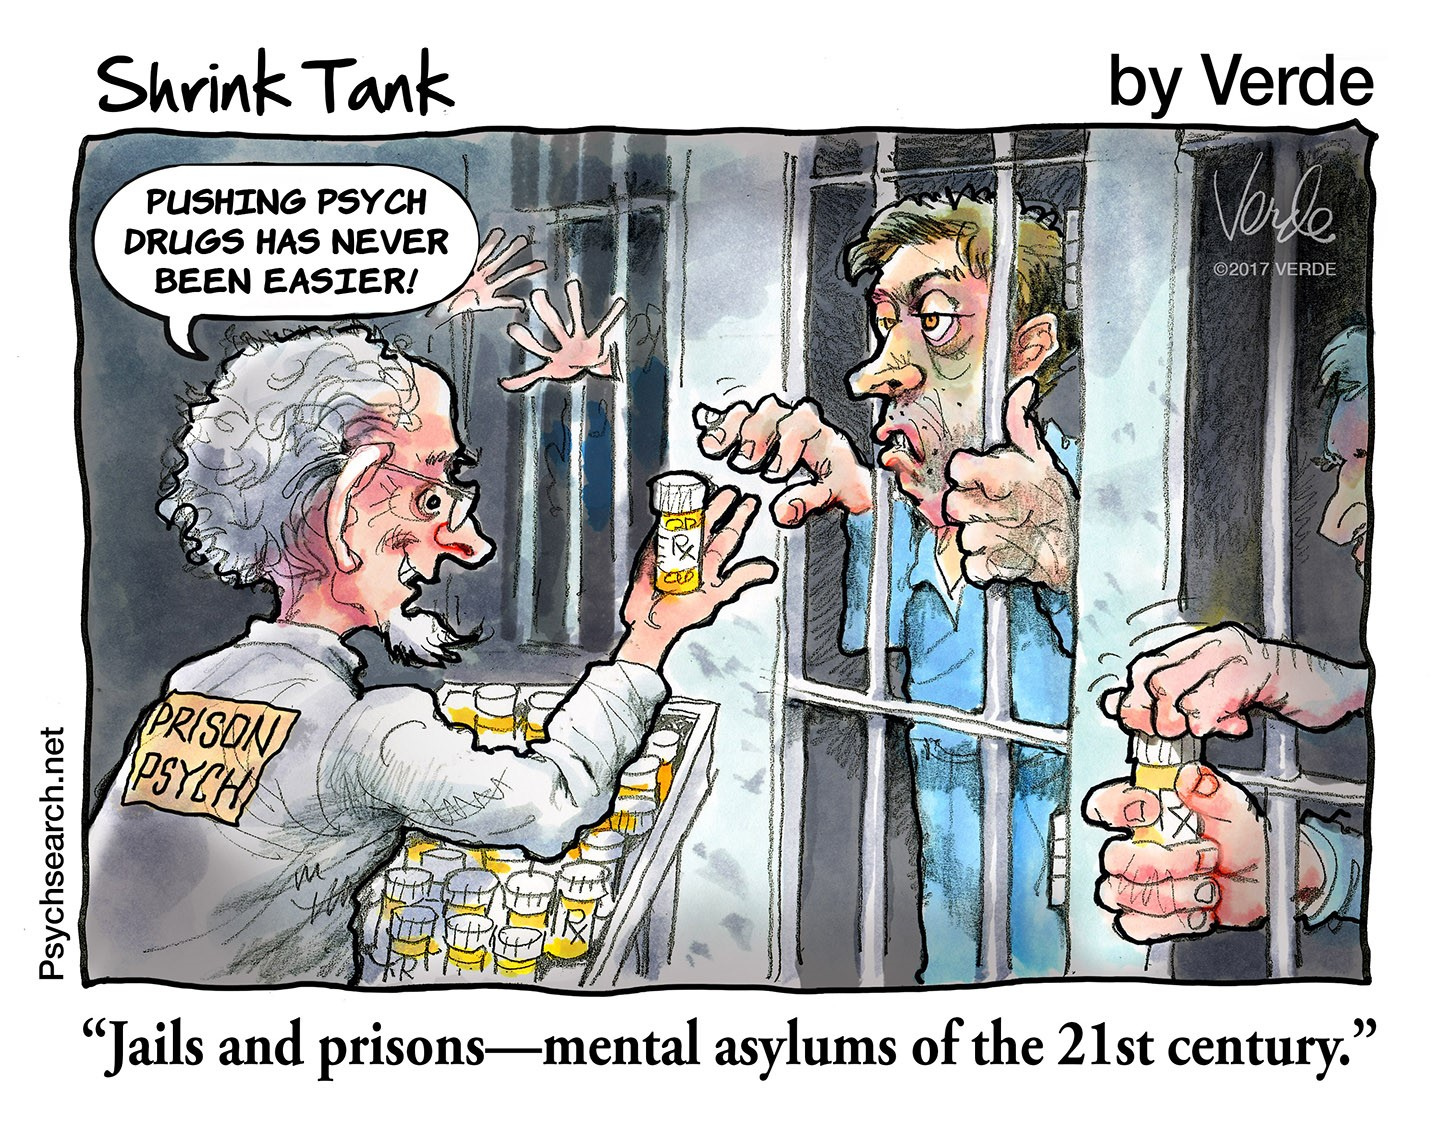 JAILS & PRISONS - 21ST CENTURY MENTAL ASYLUMS